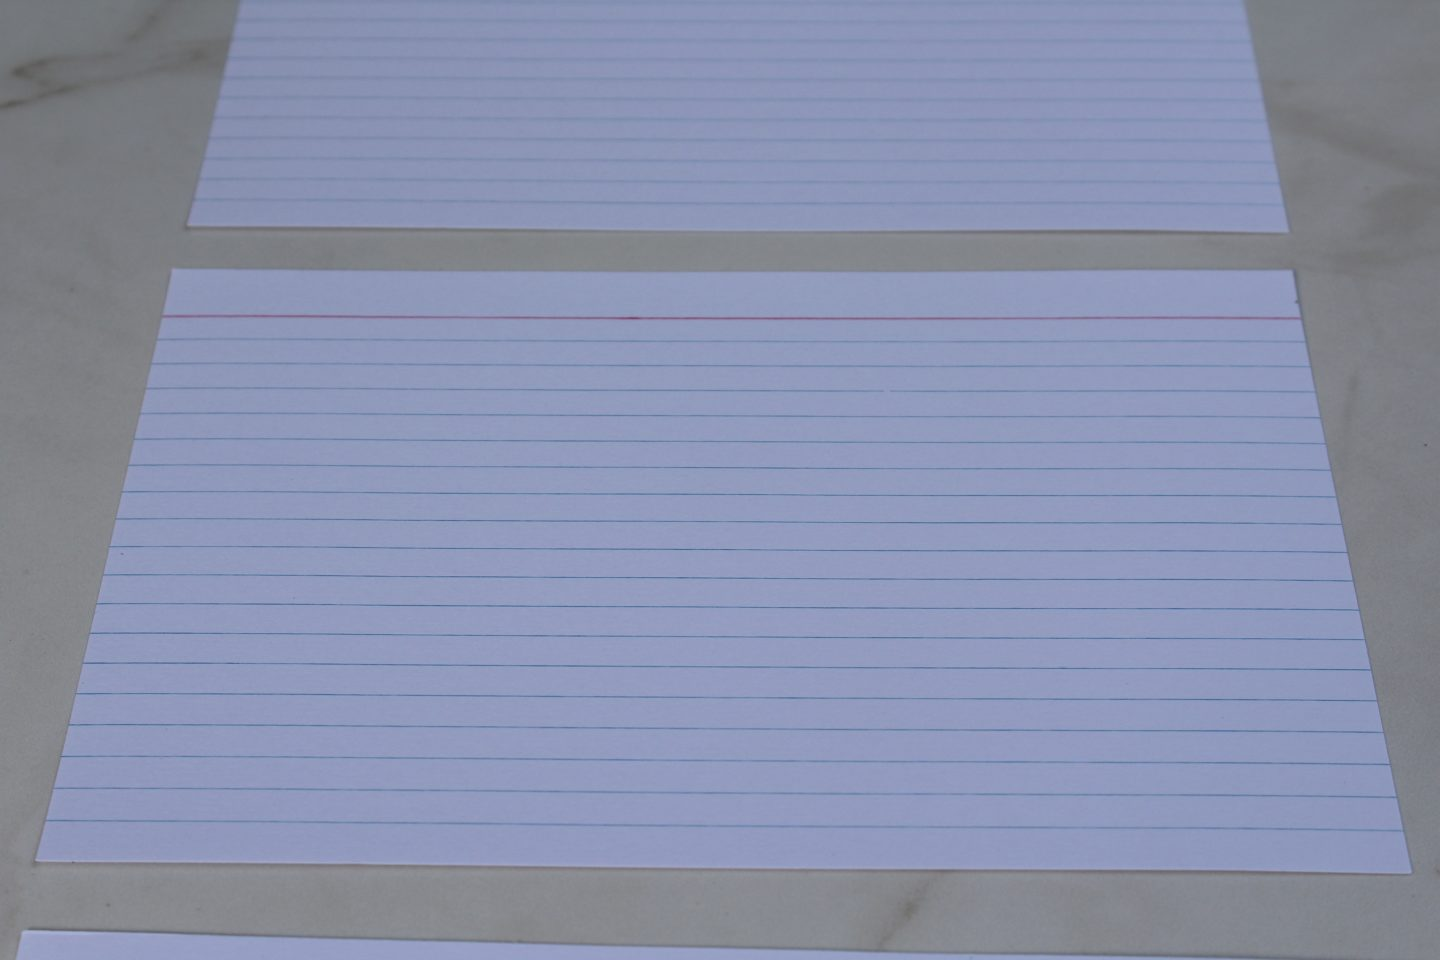 index cards Image 8-25-17 at 4.56 PM